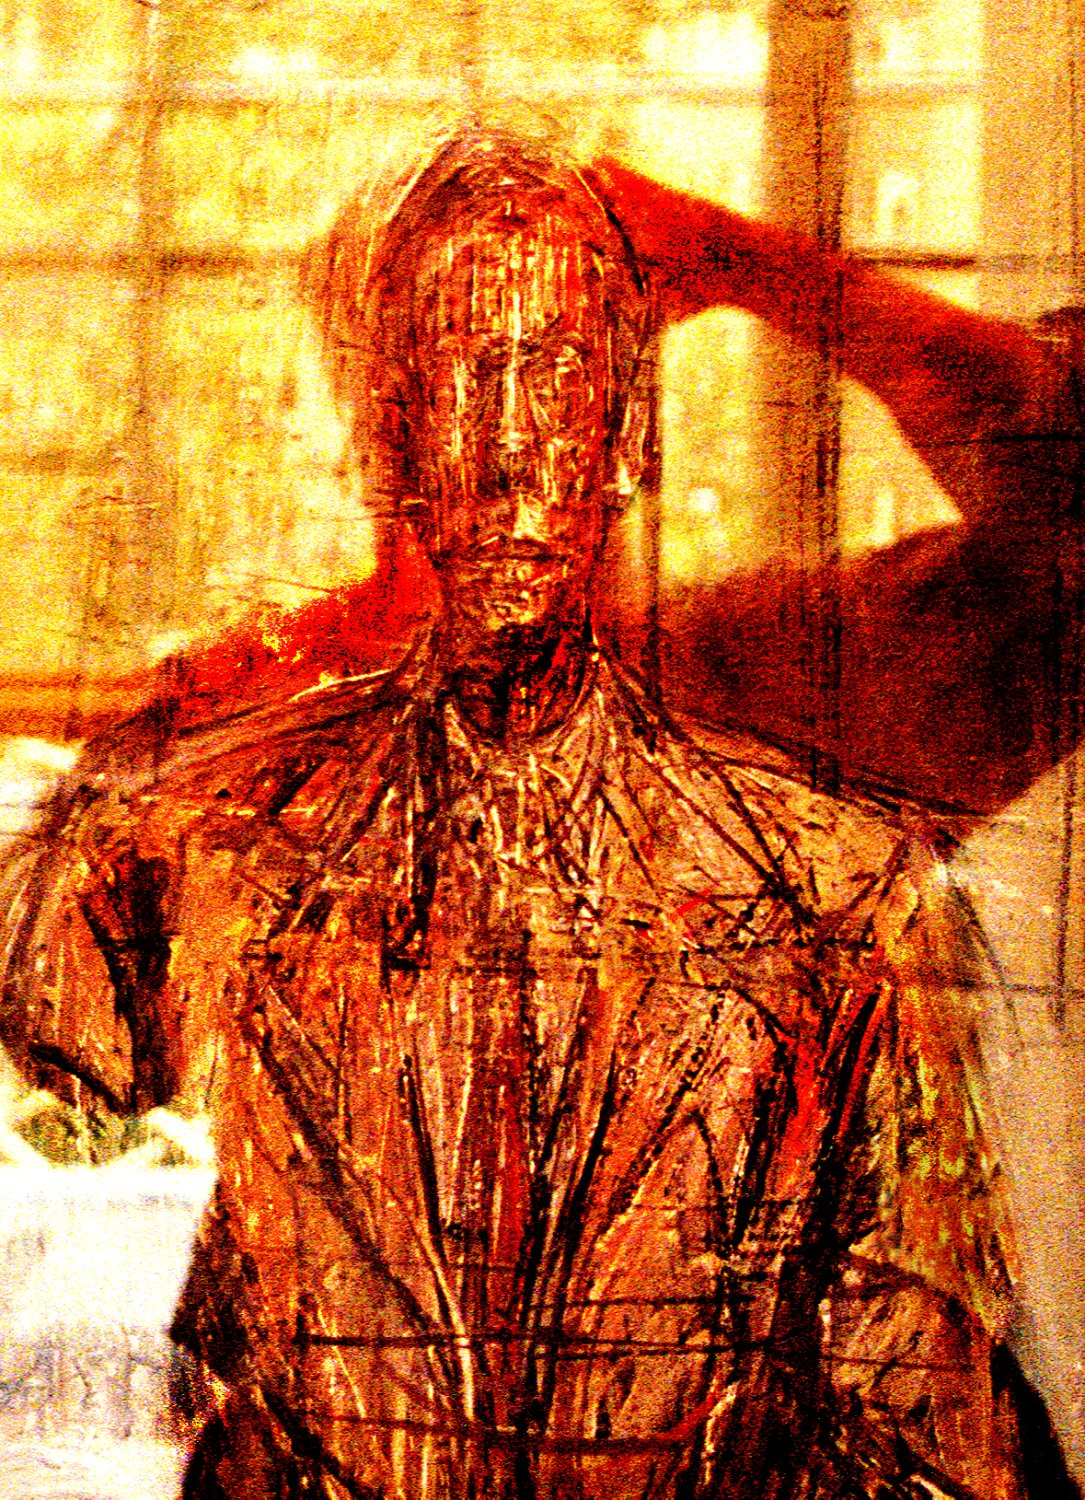 - Self portrait with Giacometti self portrait - Techno-Impressionist Museum - Techno-Impressionism - art - beautiful - photo photography picture - by Tony Karp